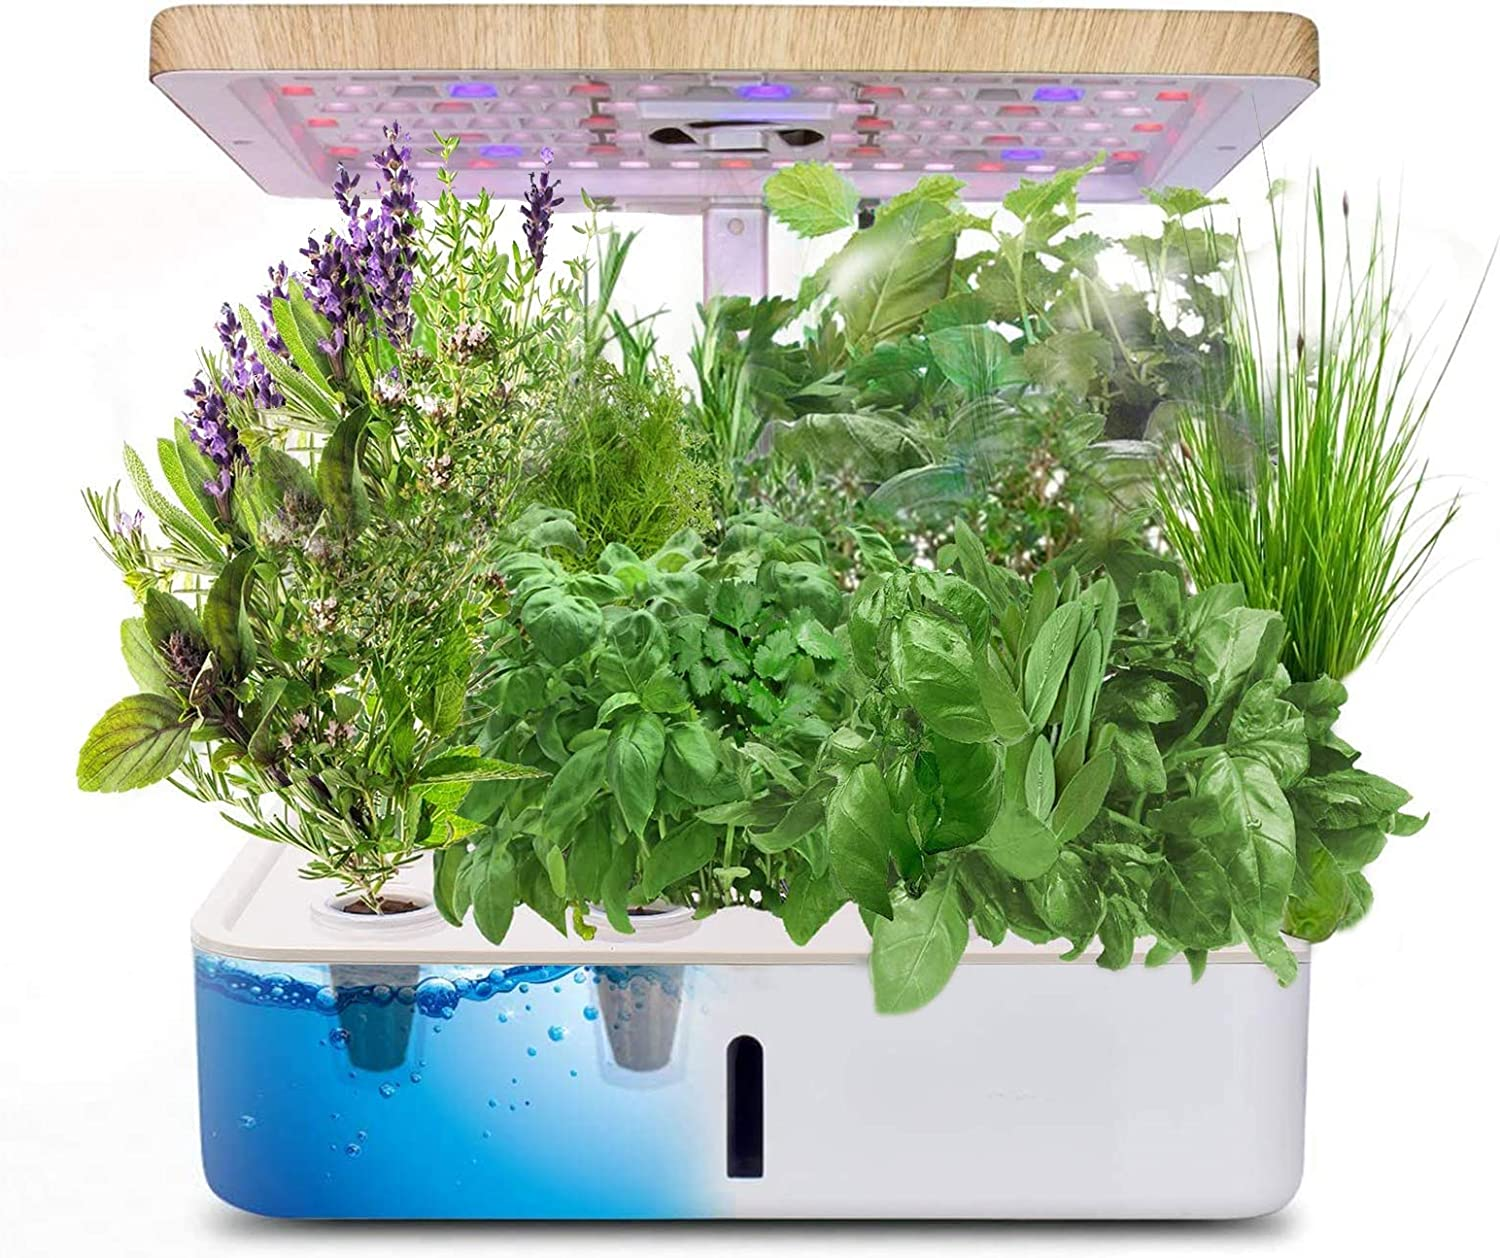 Hydroponics Growing System, Indoor Herb Garden Planter Starter Kit with Grow Light, LED Height Adjustable Smart Home Garden with Automatic Timer for Various Plants